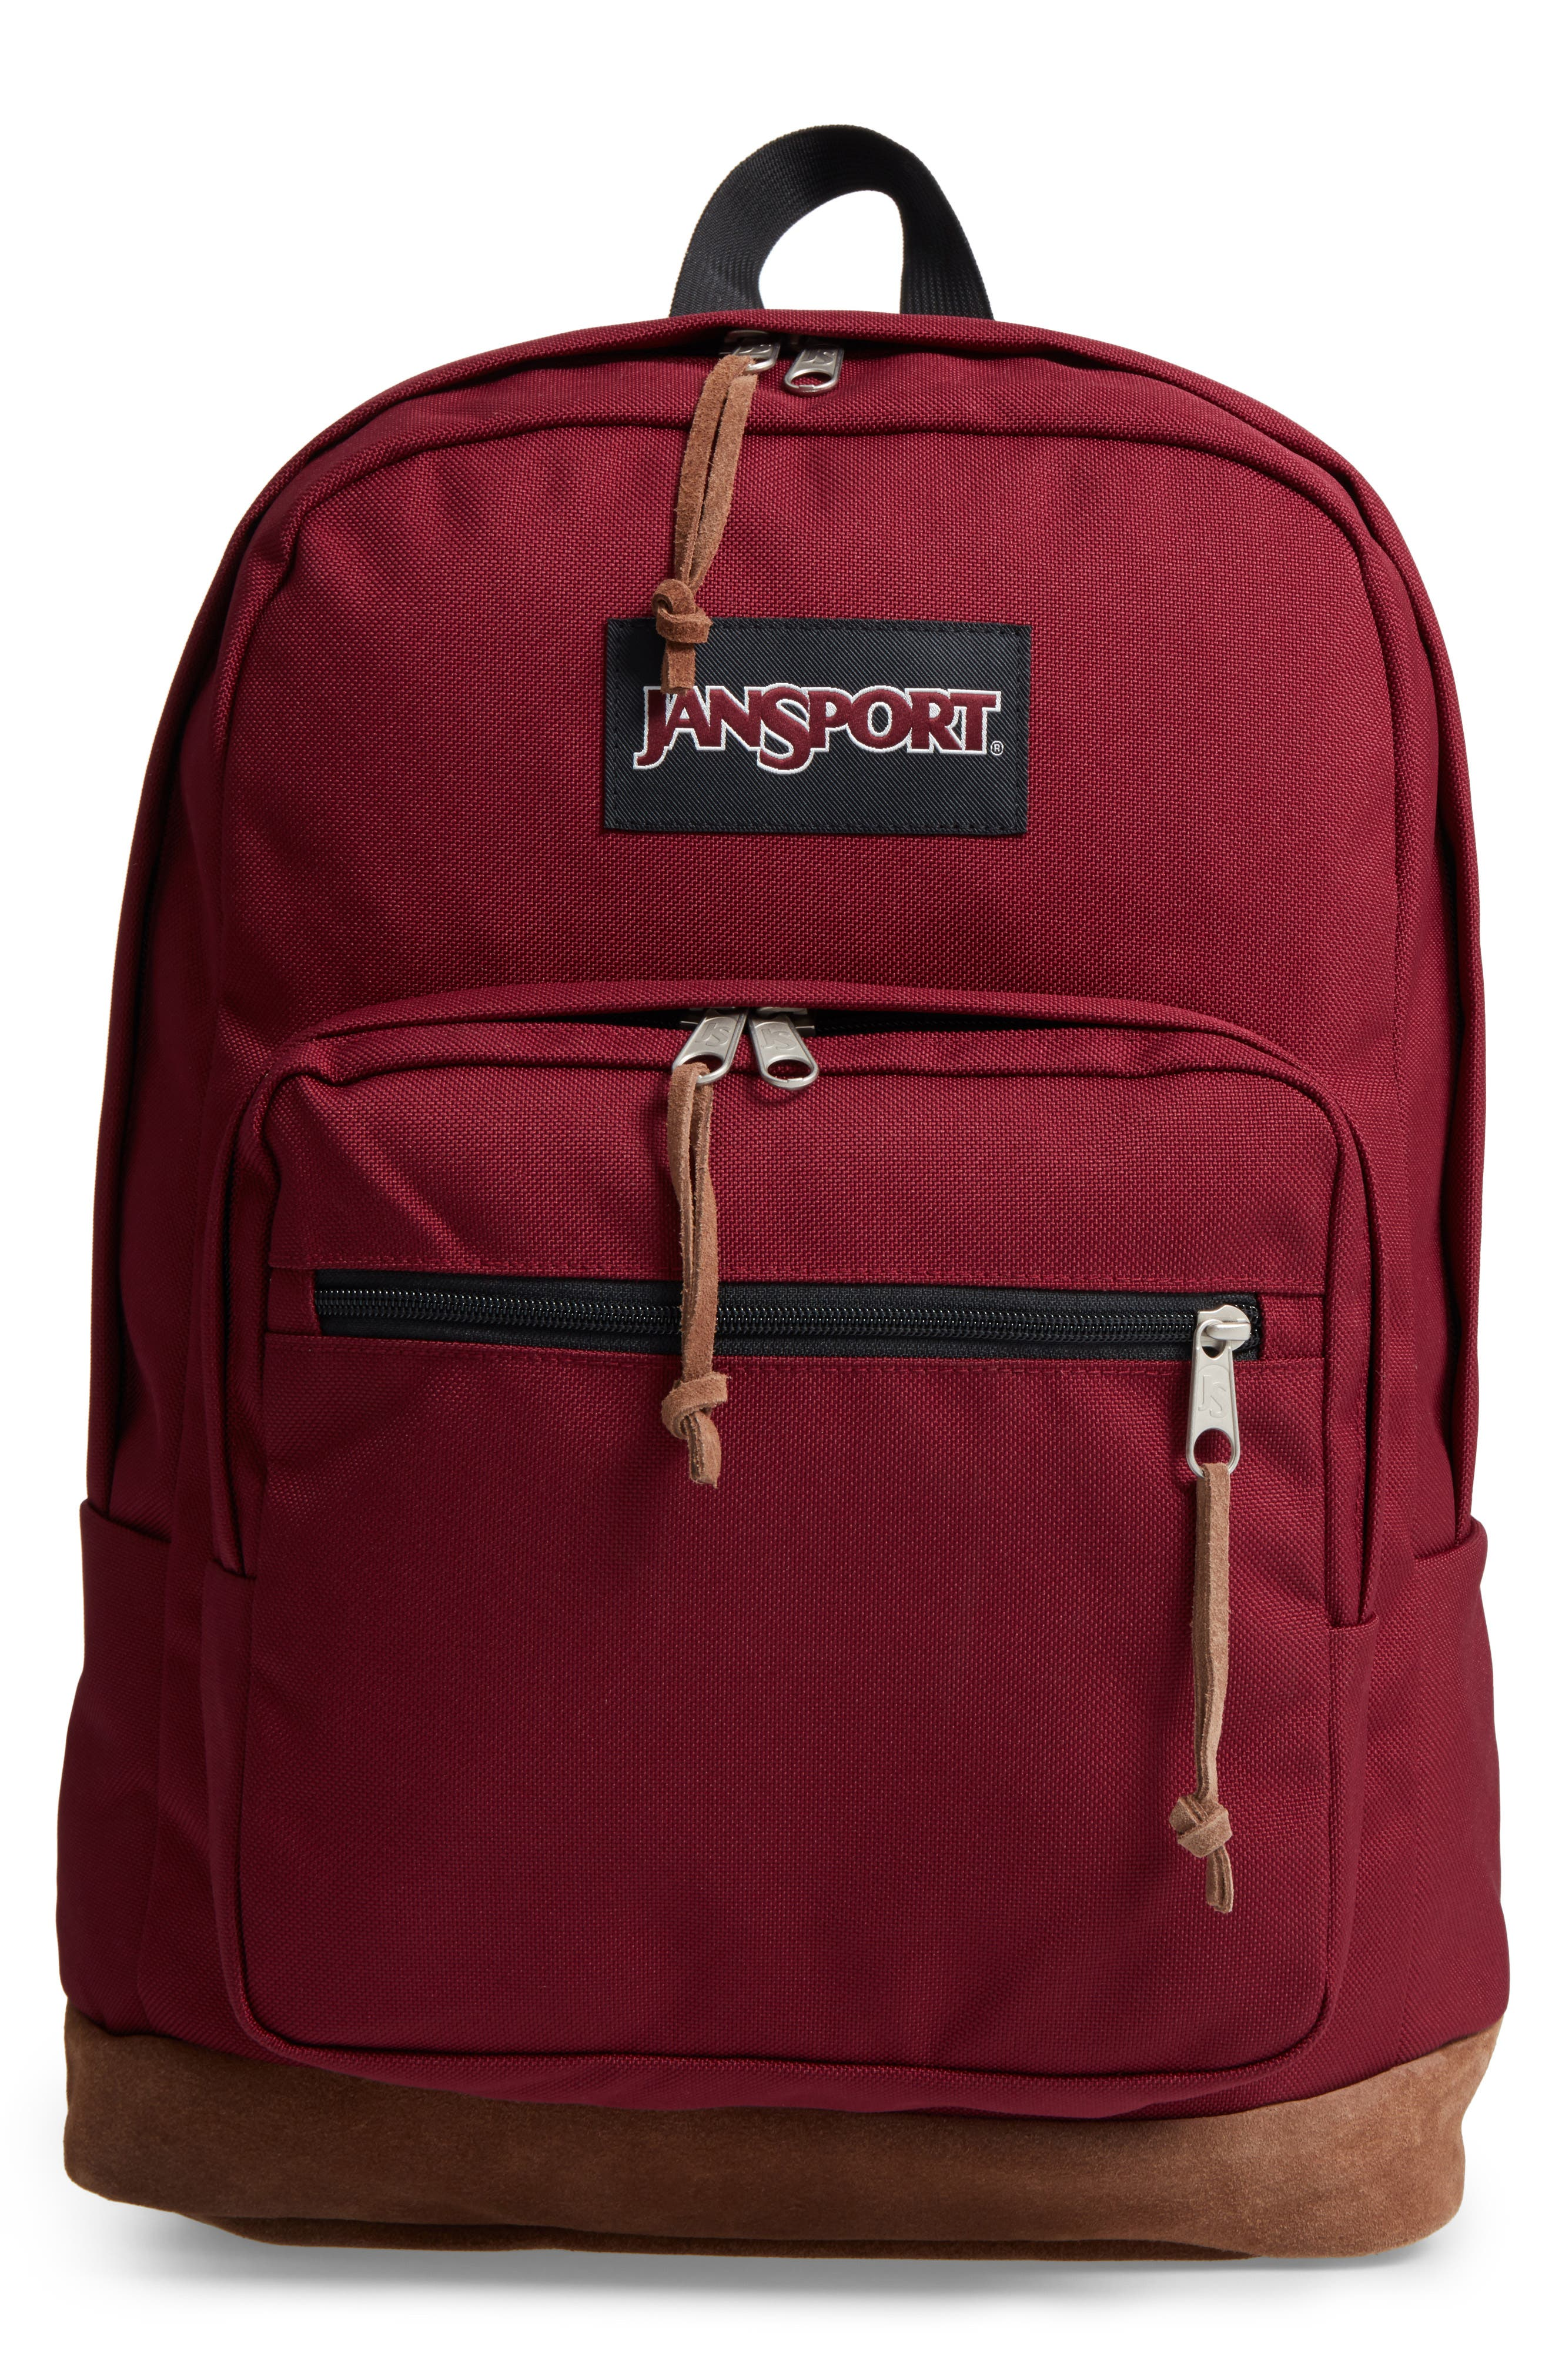 'Right Pack' Backpack,                             Main thumbnail 1, color,                             Russet Red